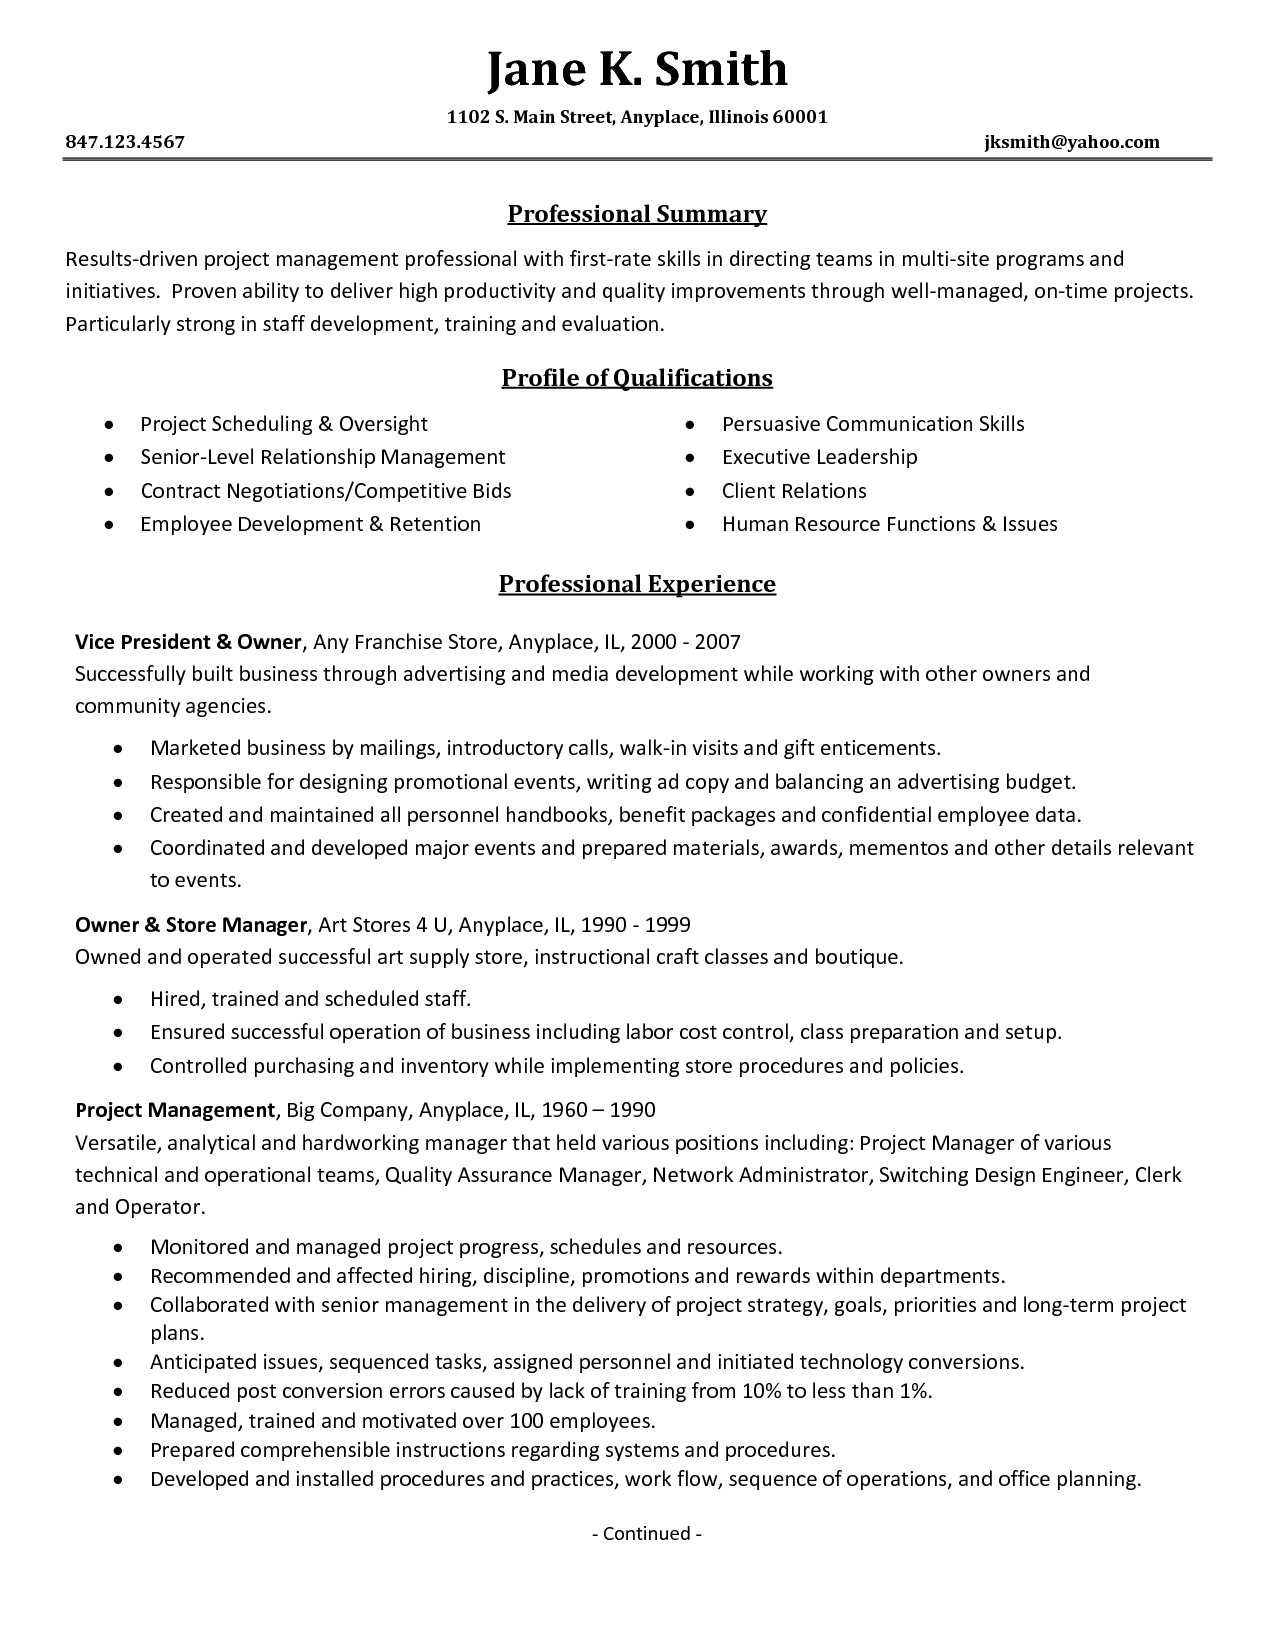 Leadership Skills Resume Leadership Skills Resume Template